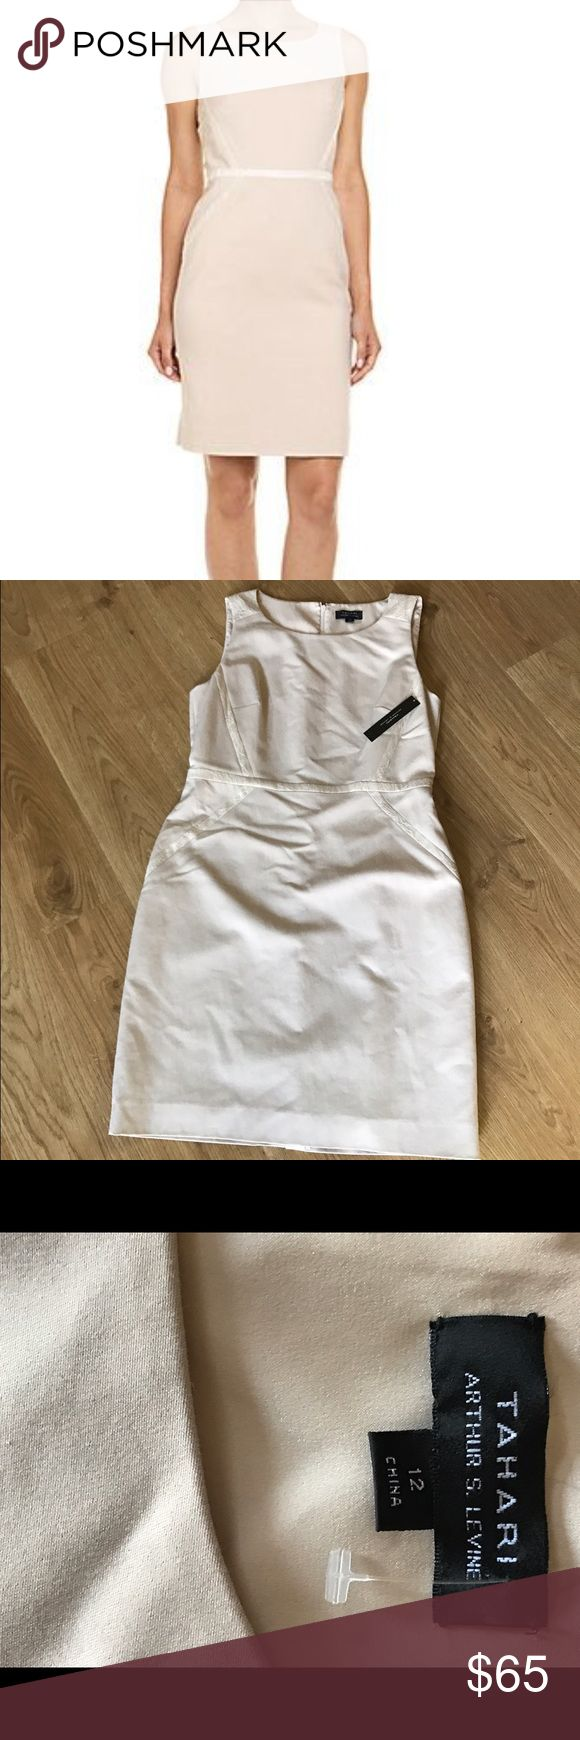 Tahari cream color dress Beautiful NWT TAHARI creamsoda dress size 12. This an adorable size 12 with lace accents and zipper back. From smoke free home. Tahari Dresses